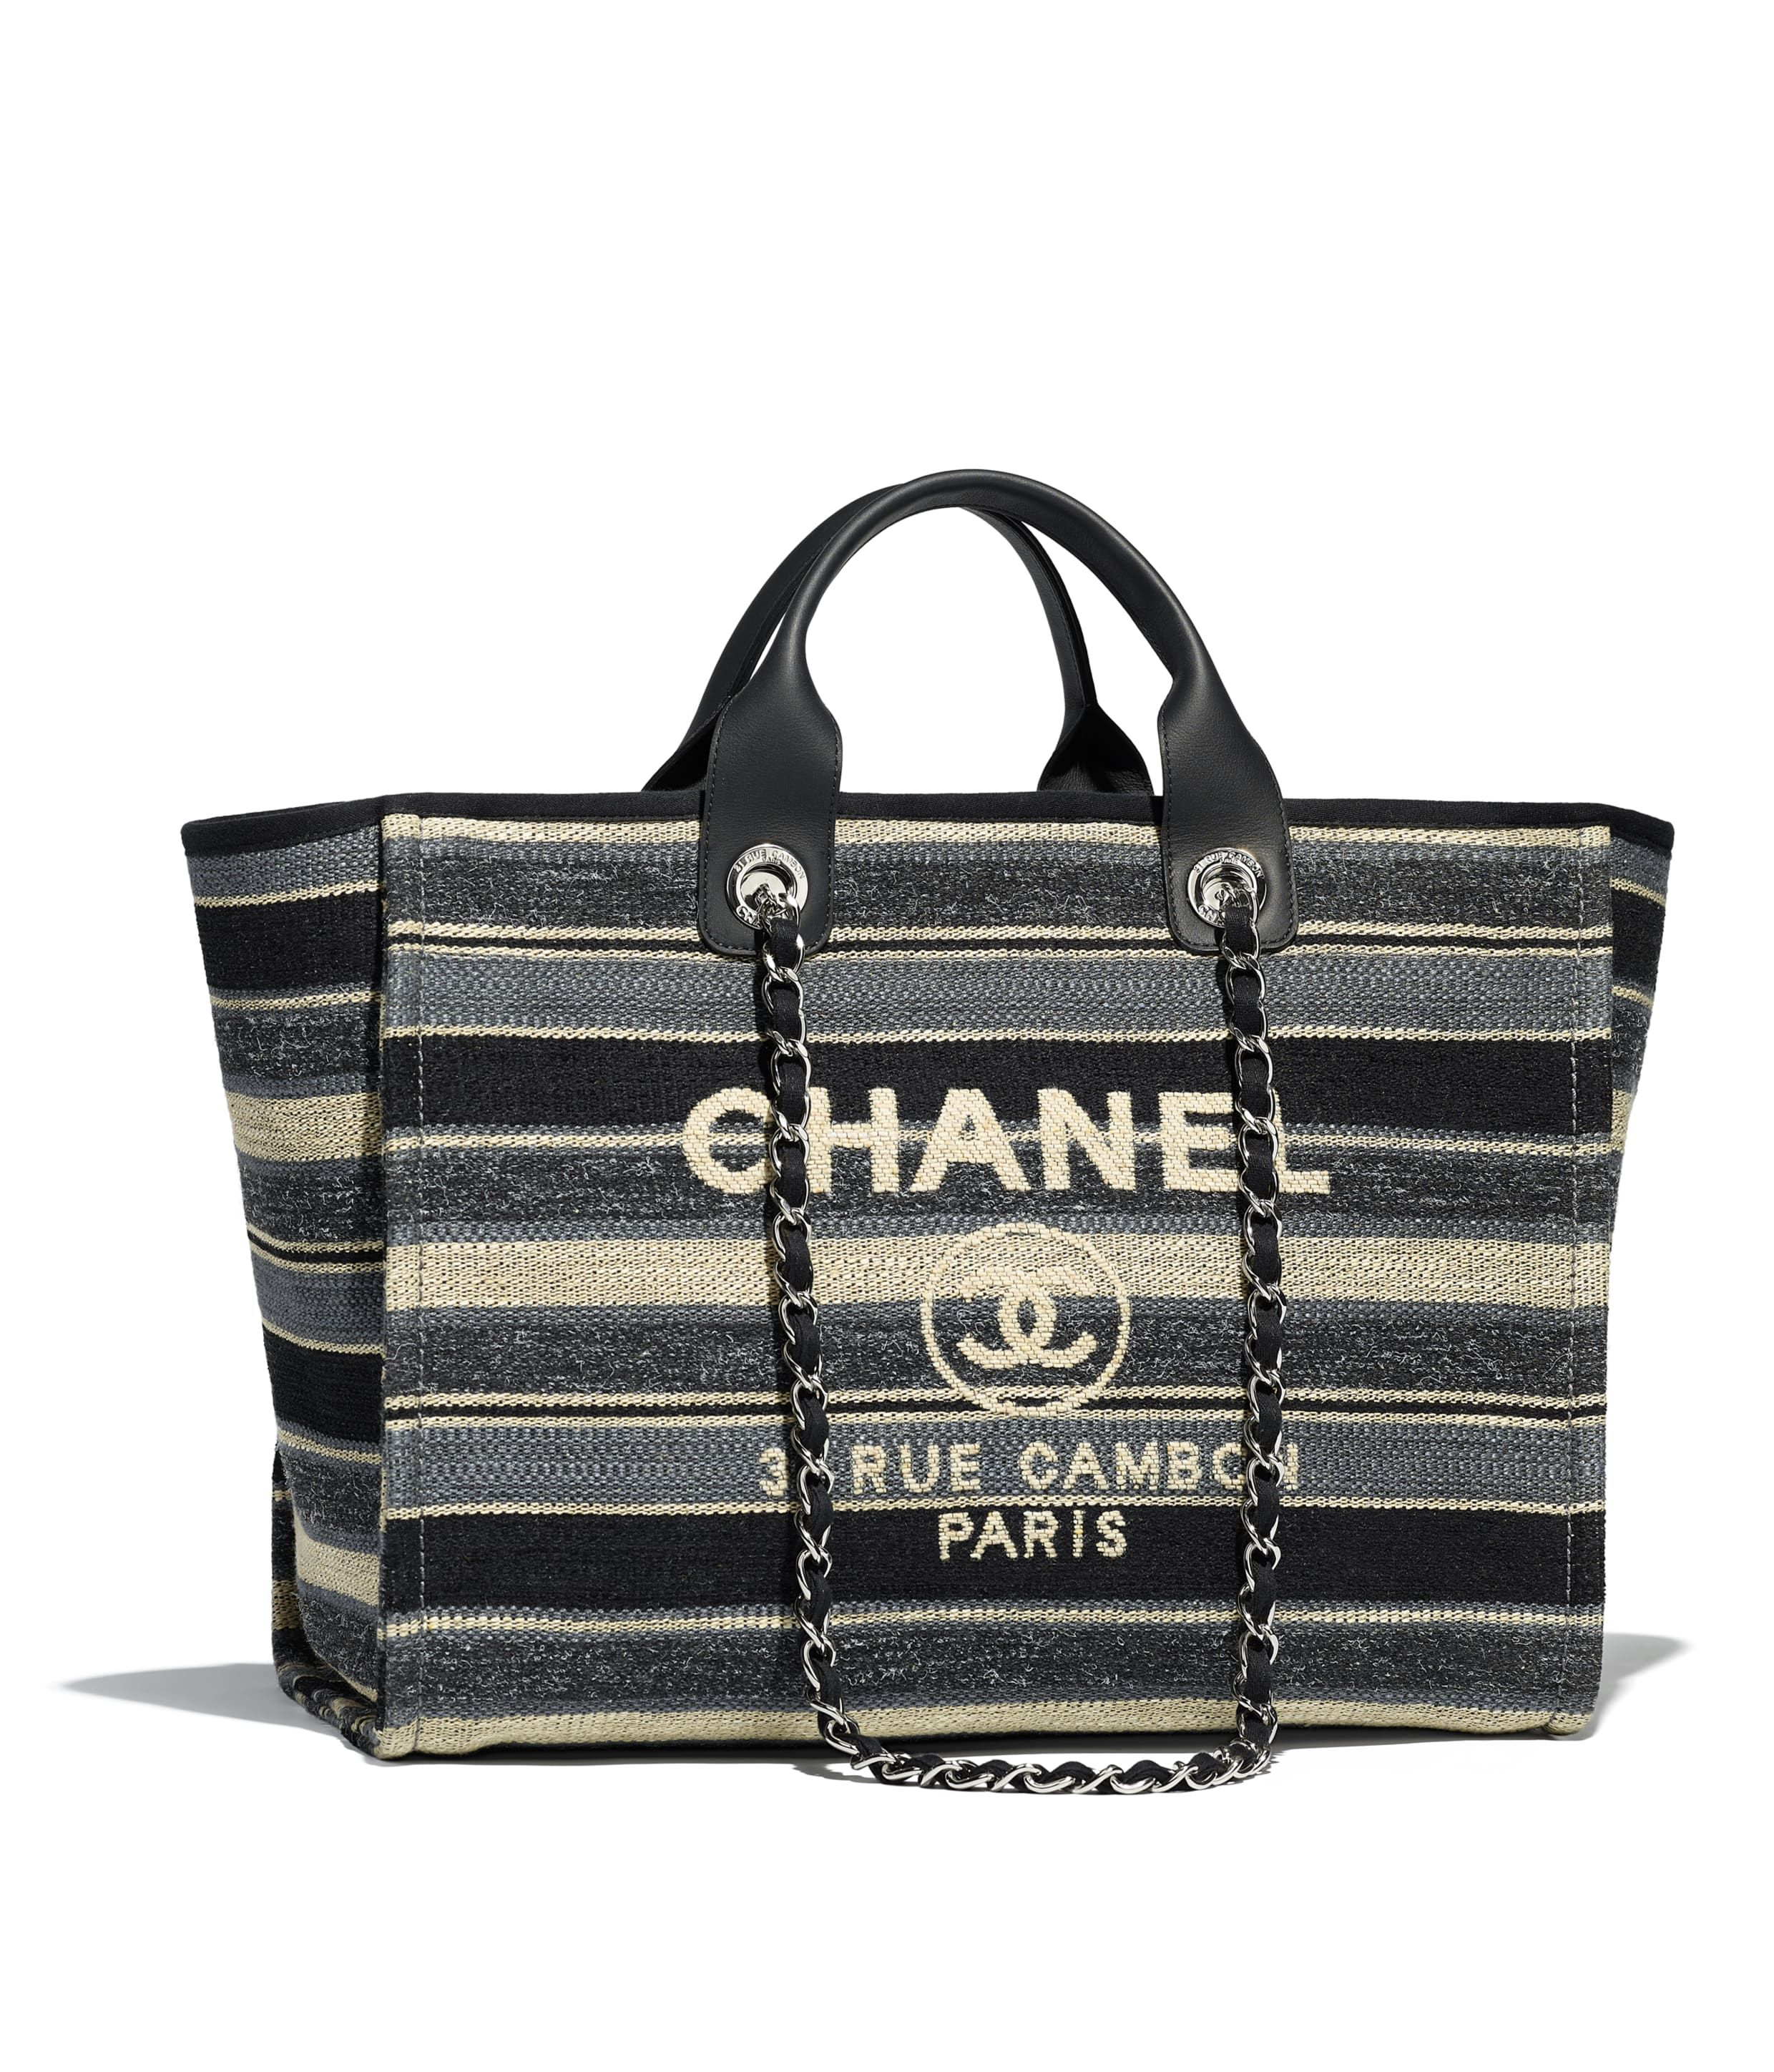 a3a704302652 Shearling Lambskin, Calfskin & Silver-Tone Metal Green Maxi Shopping Bag |  CHANEL